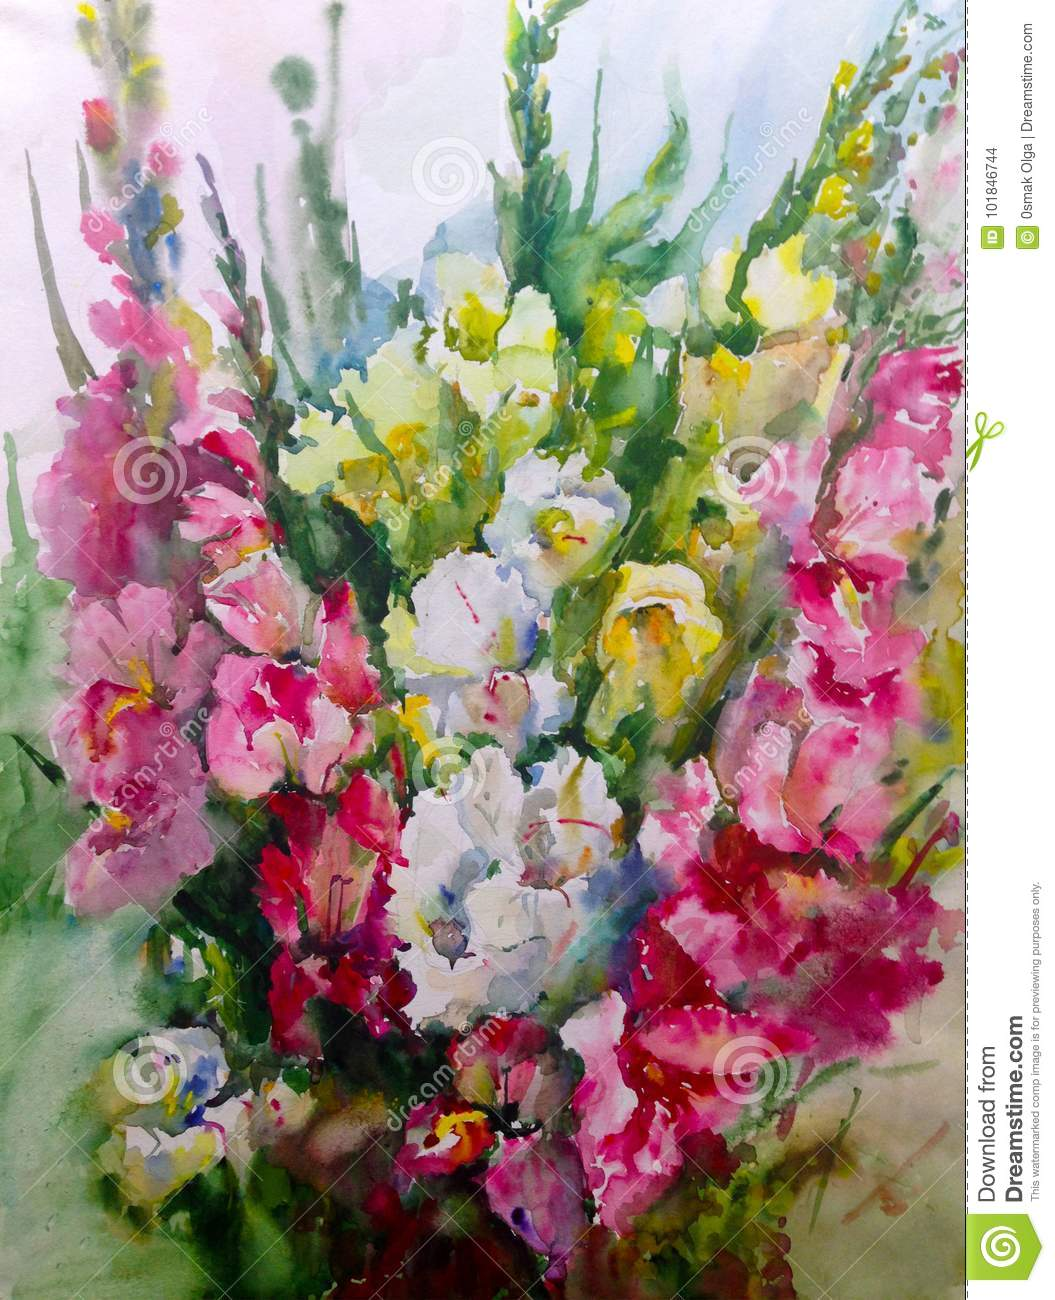 Watercolor Art Background Colorful Flower Bouquet Stock Illustration ...